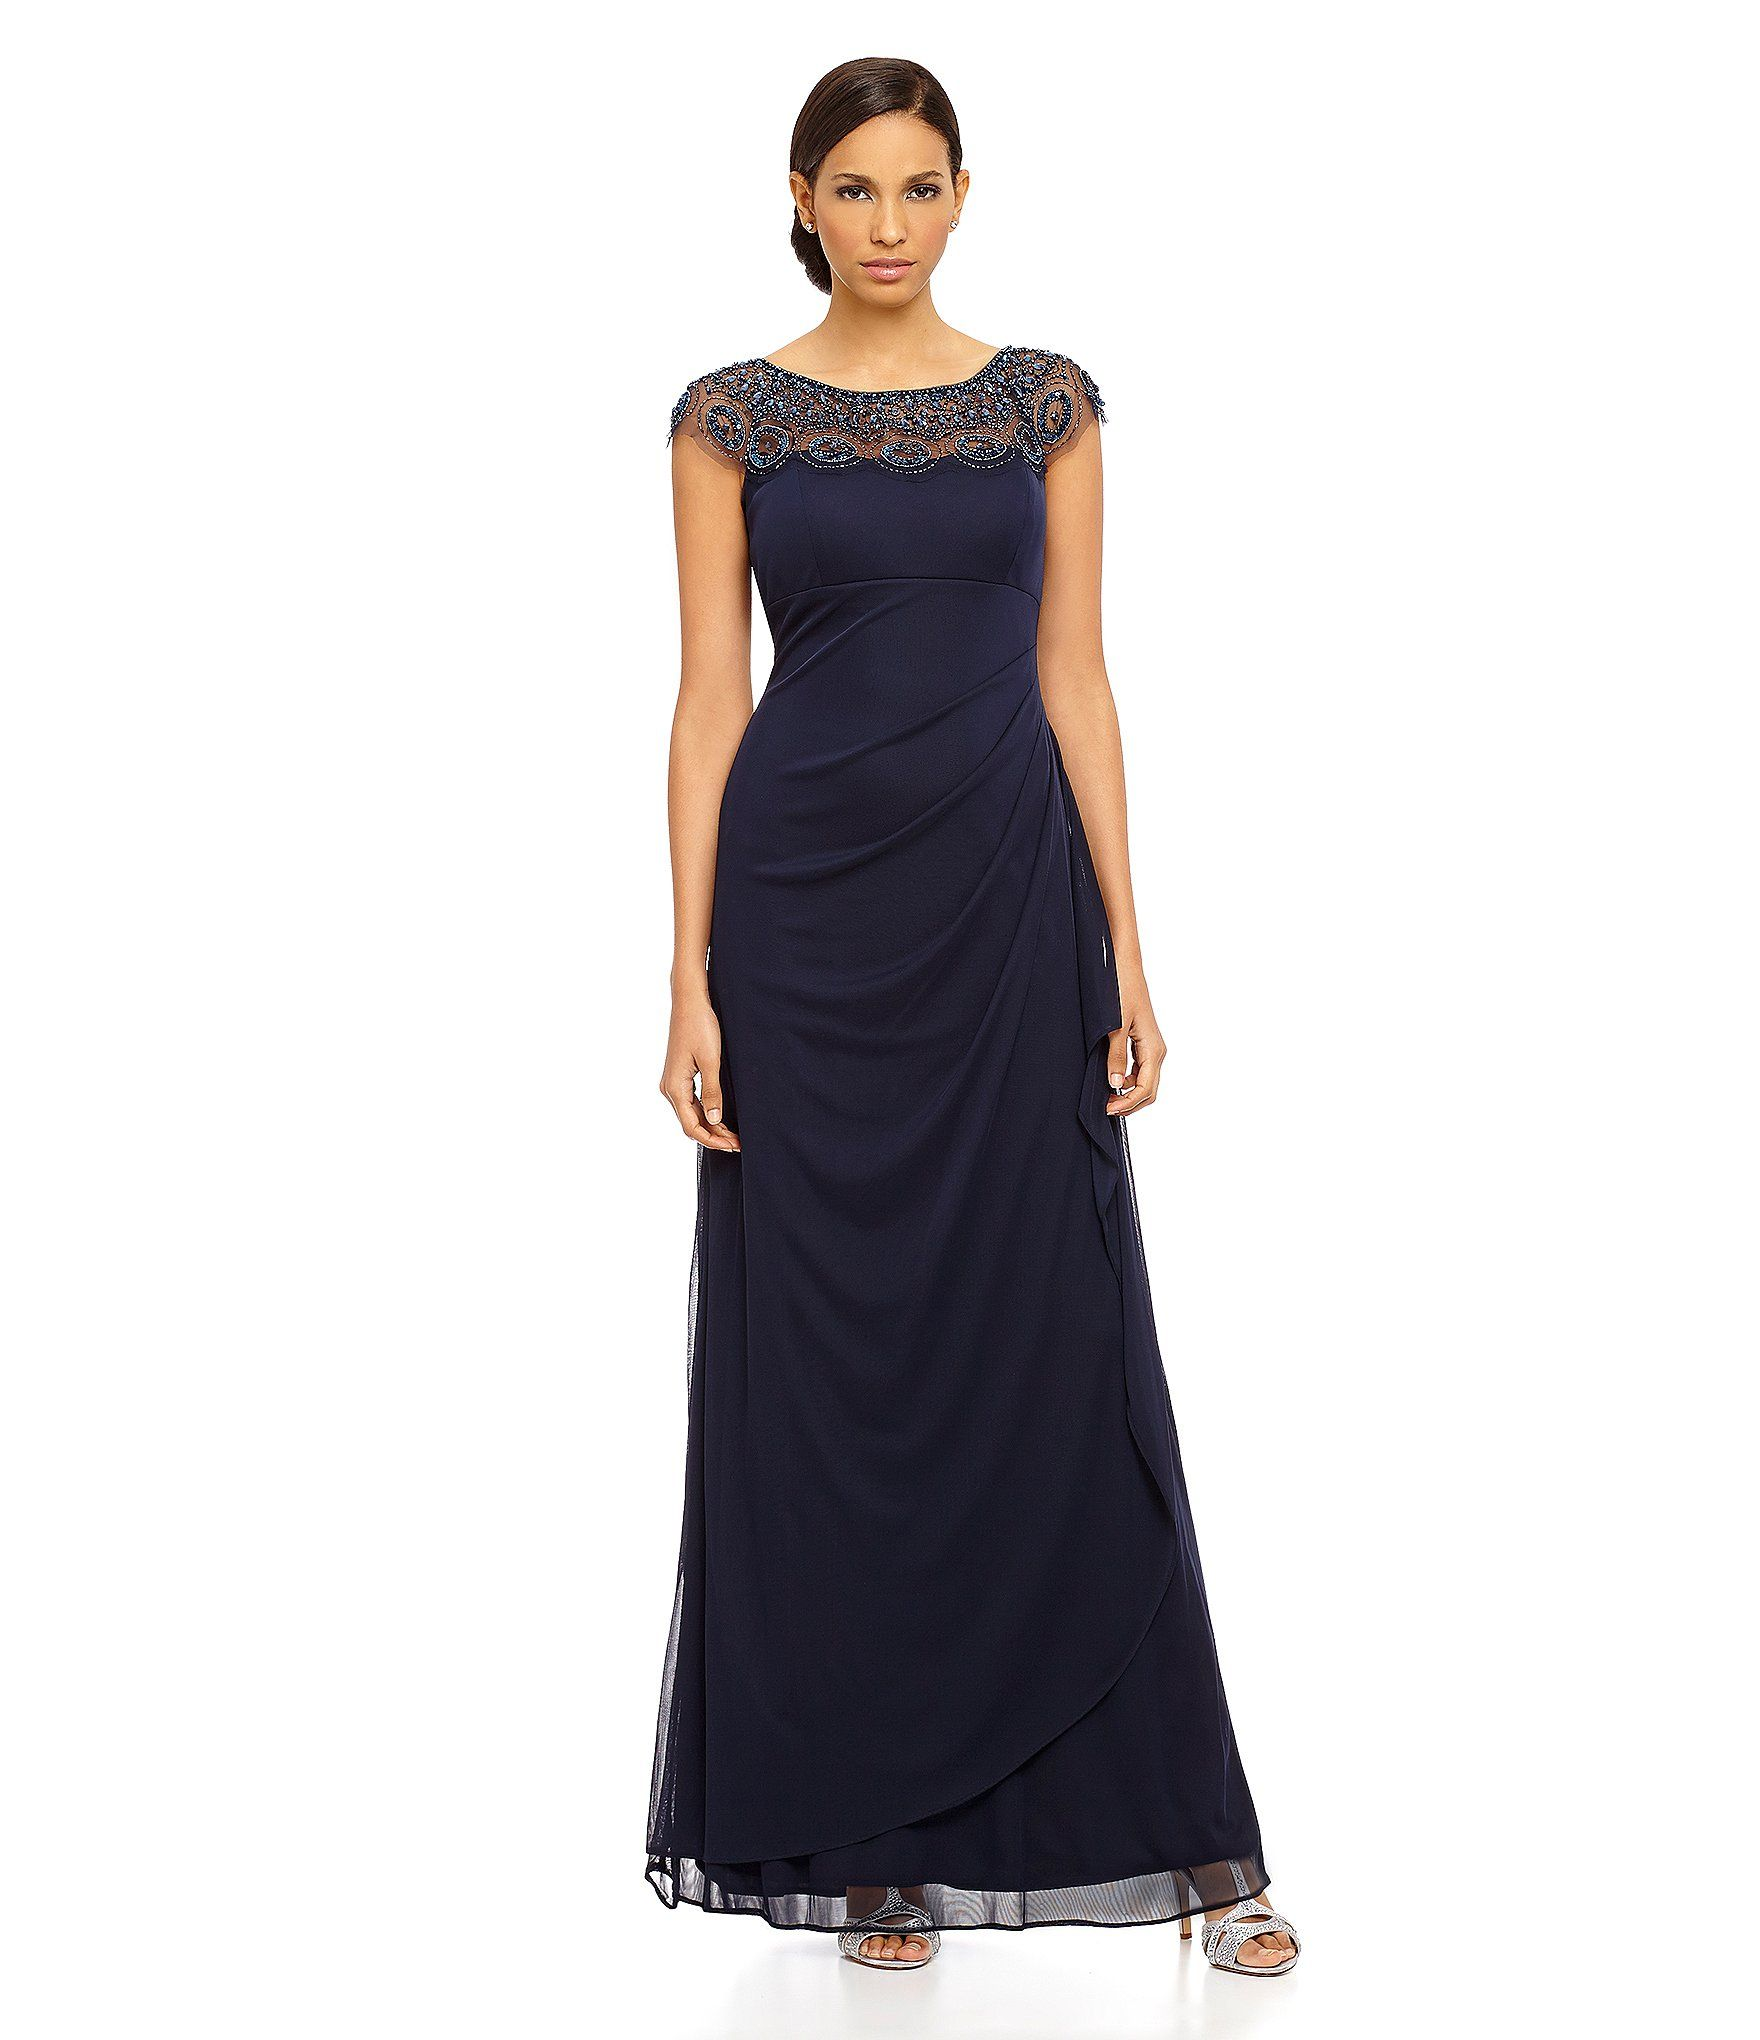 Xscape Beaded Gown – Fashion dresses